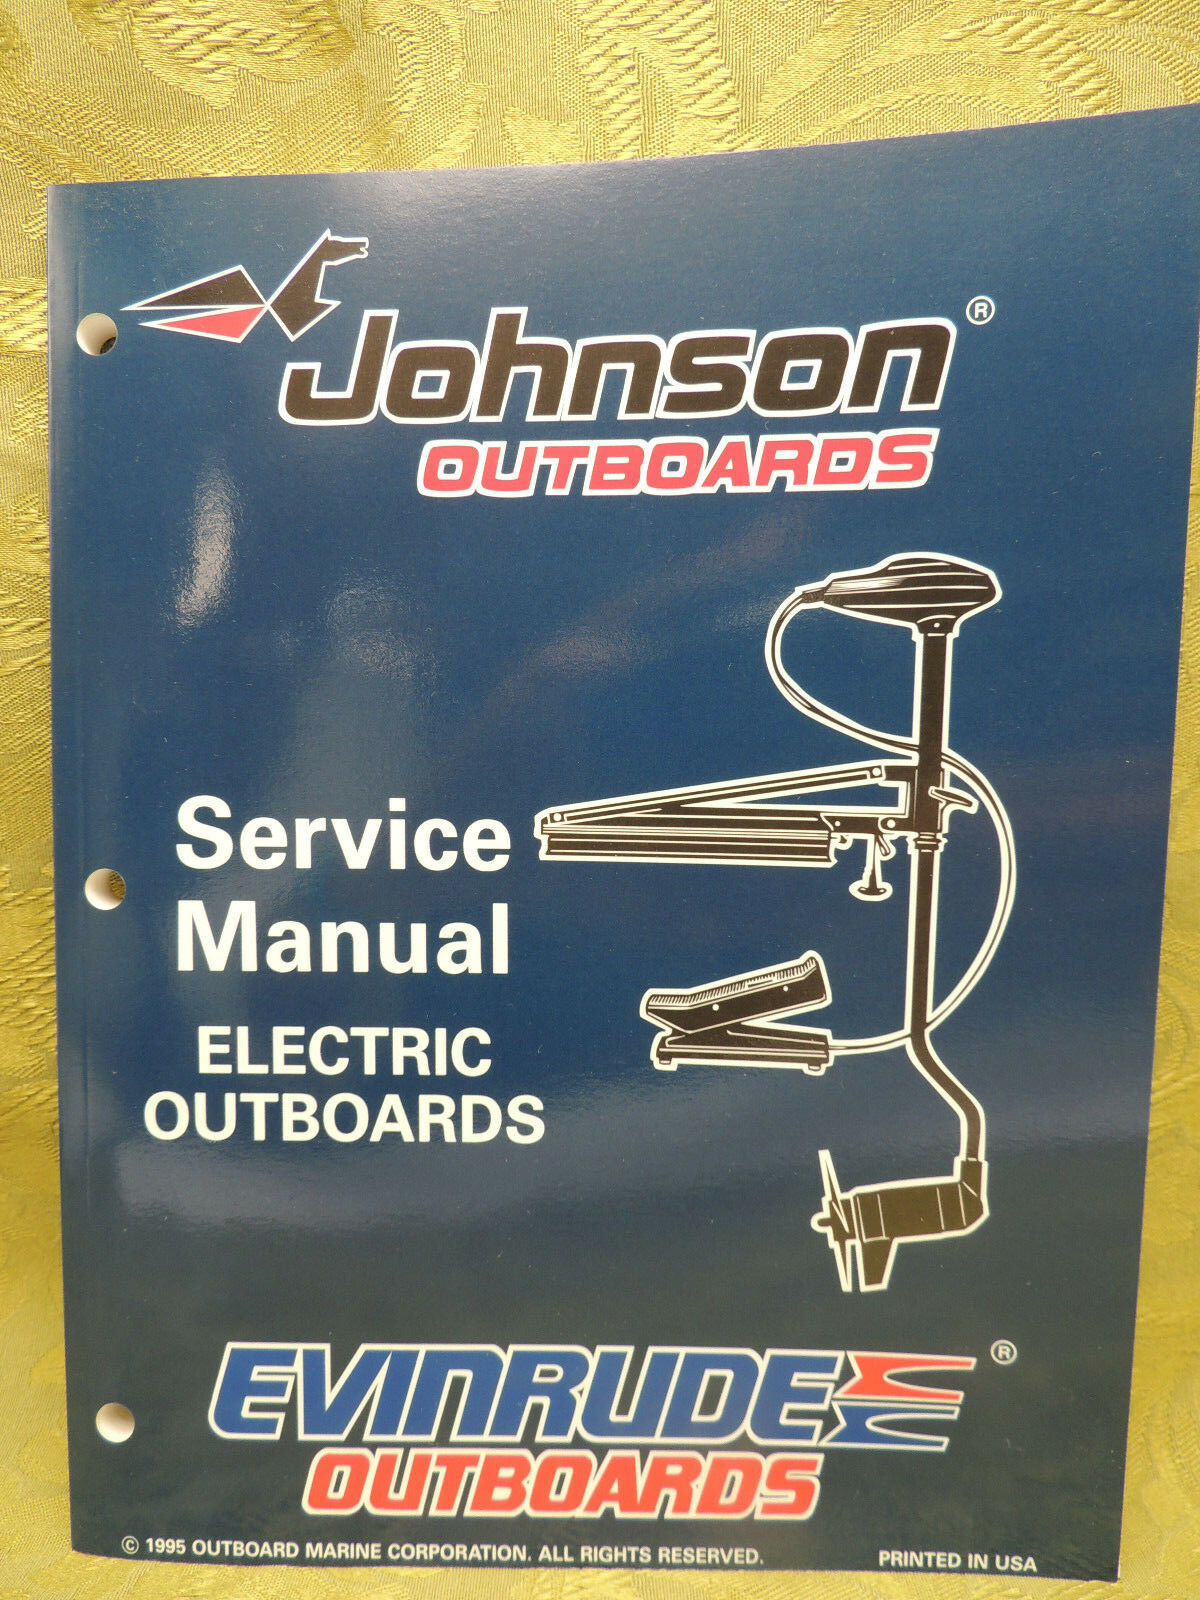 1996 Johnson Outboards Service Manual Electric Outboards Evinrude 12 24 volt